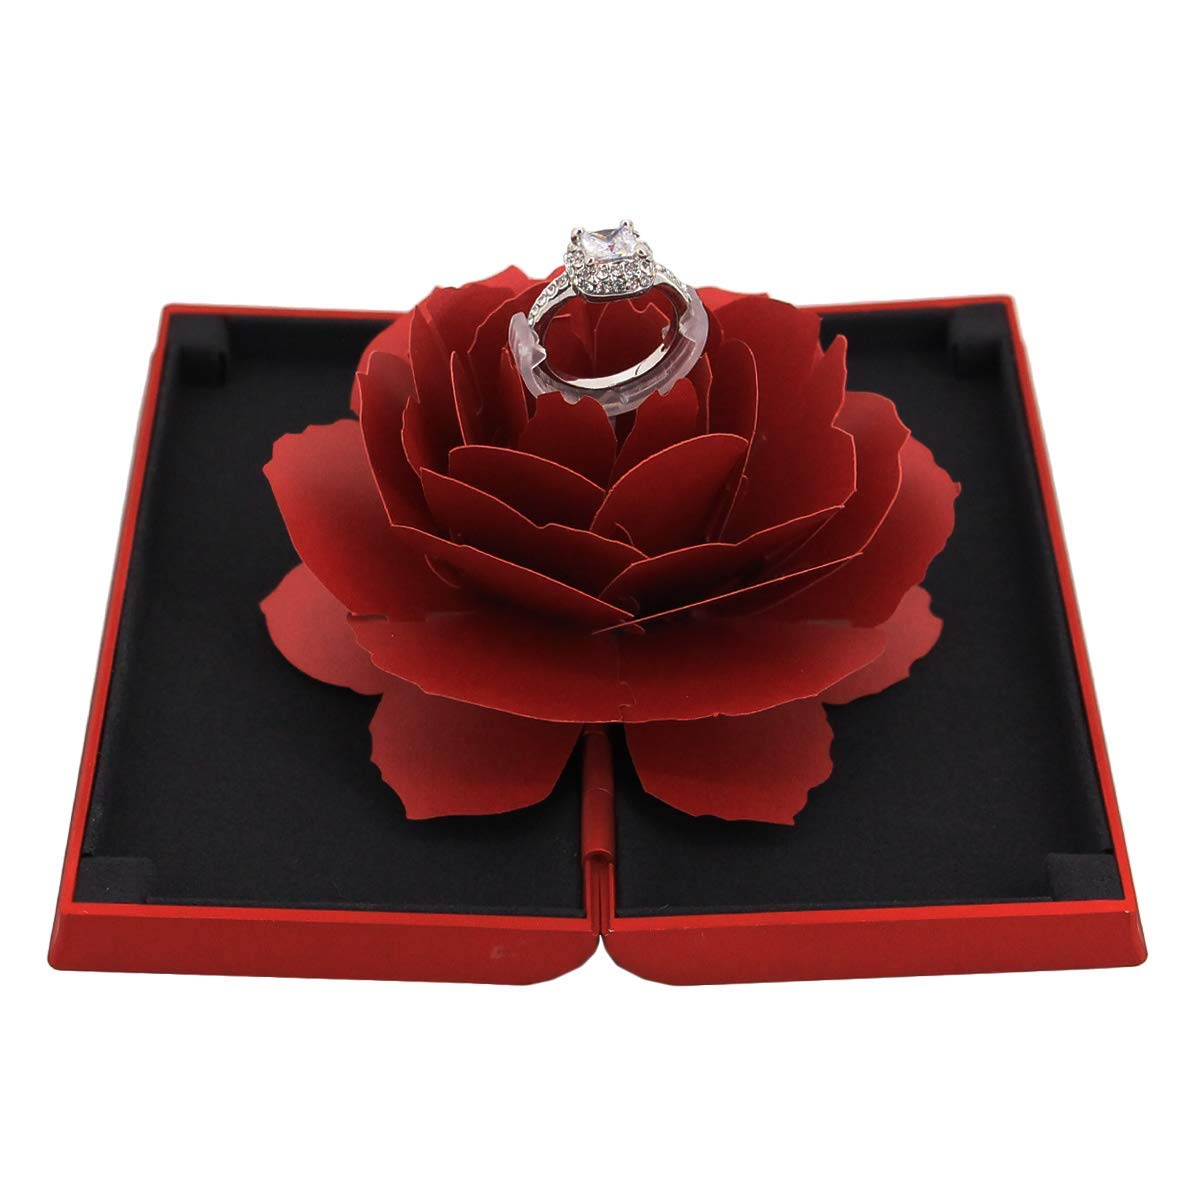 Romantic Unique Pop Up Rose Wedding Engagement Rings Box Case Surprise Jewelry Storage Holder for Proposal Wedding Ceremony Couple Lovers Gift